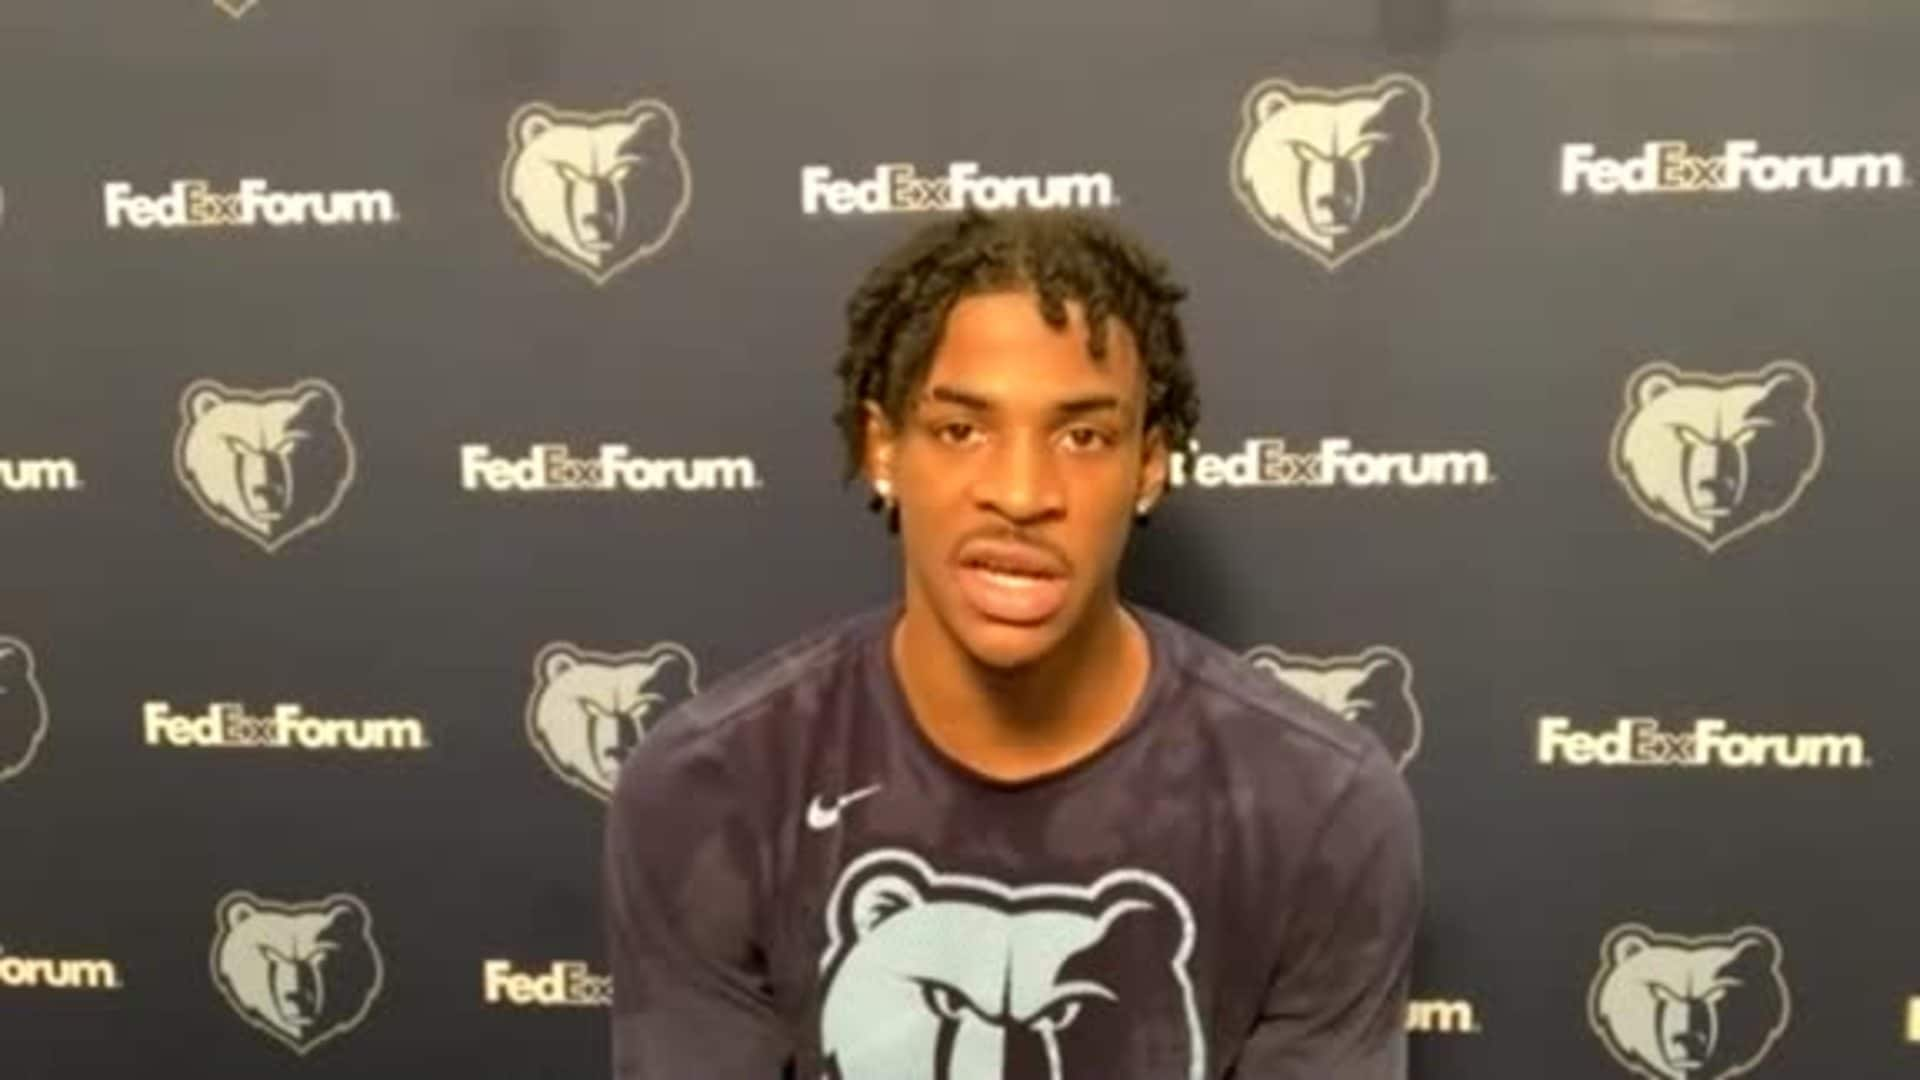 7.2.20 Ja Morant media availability